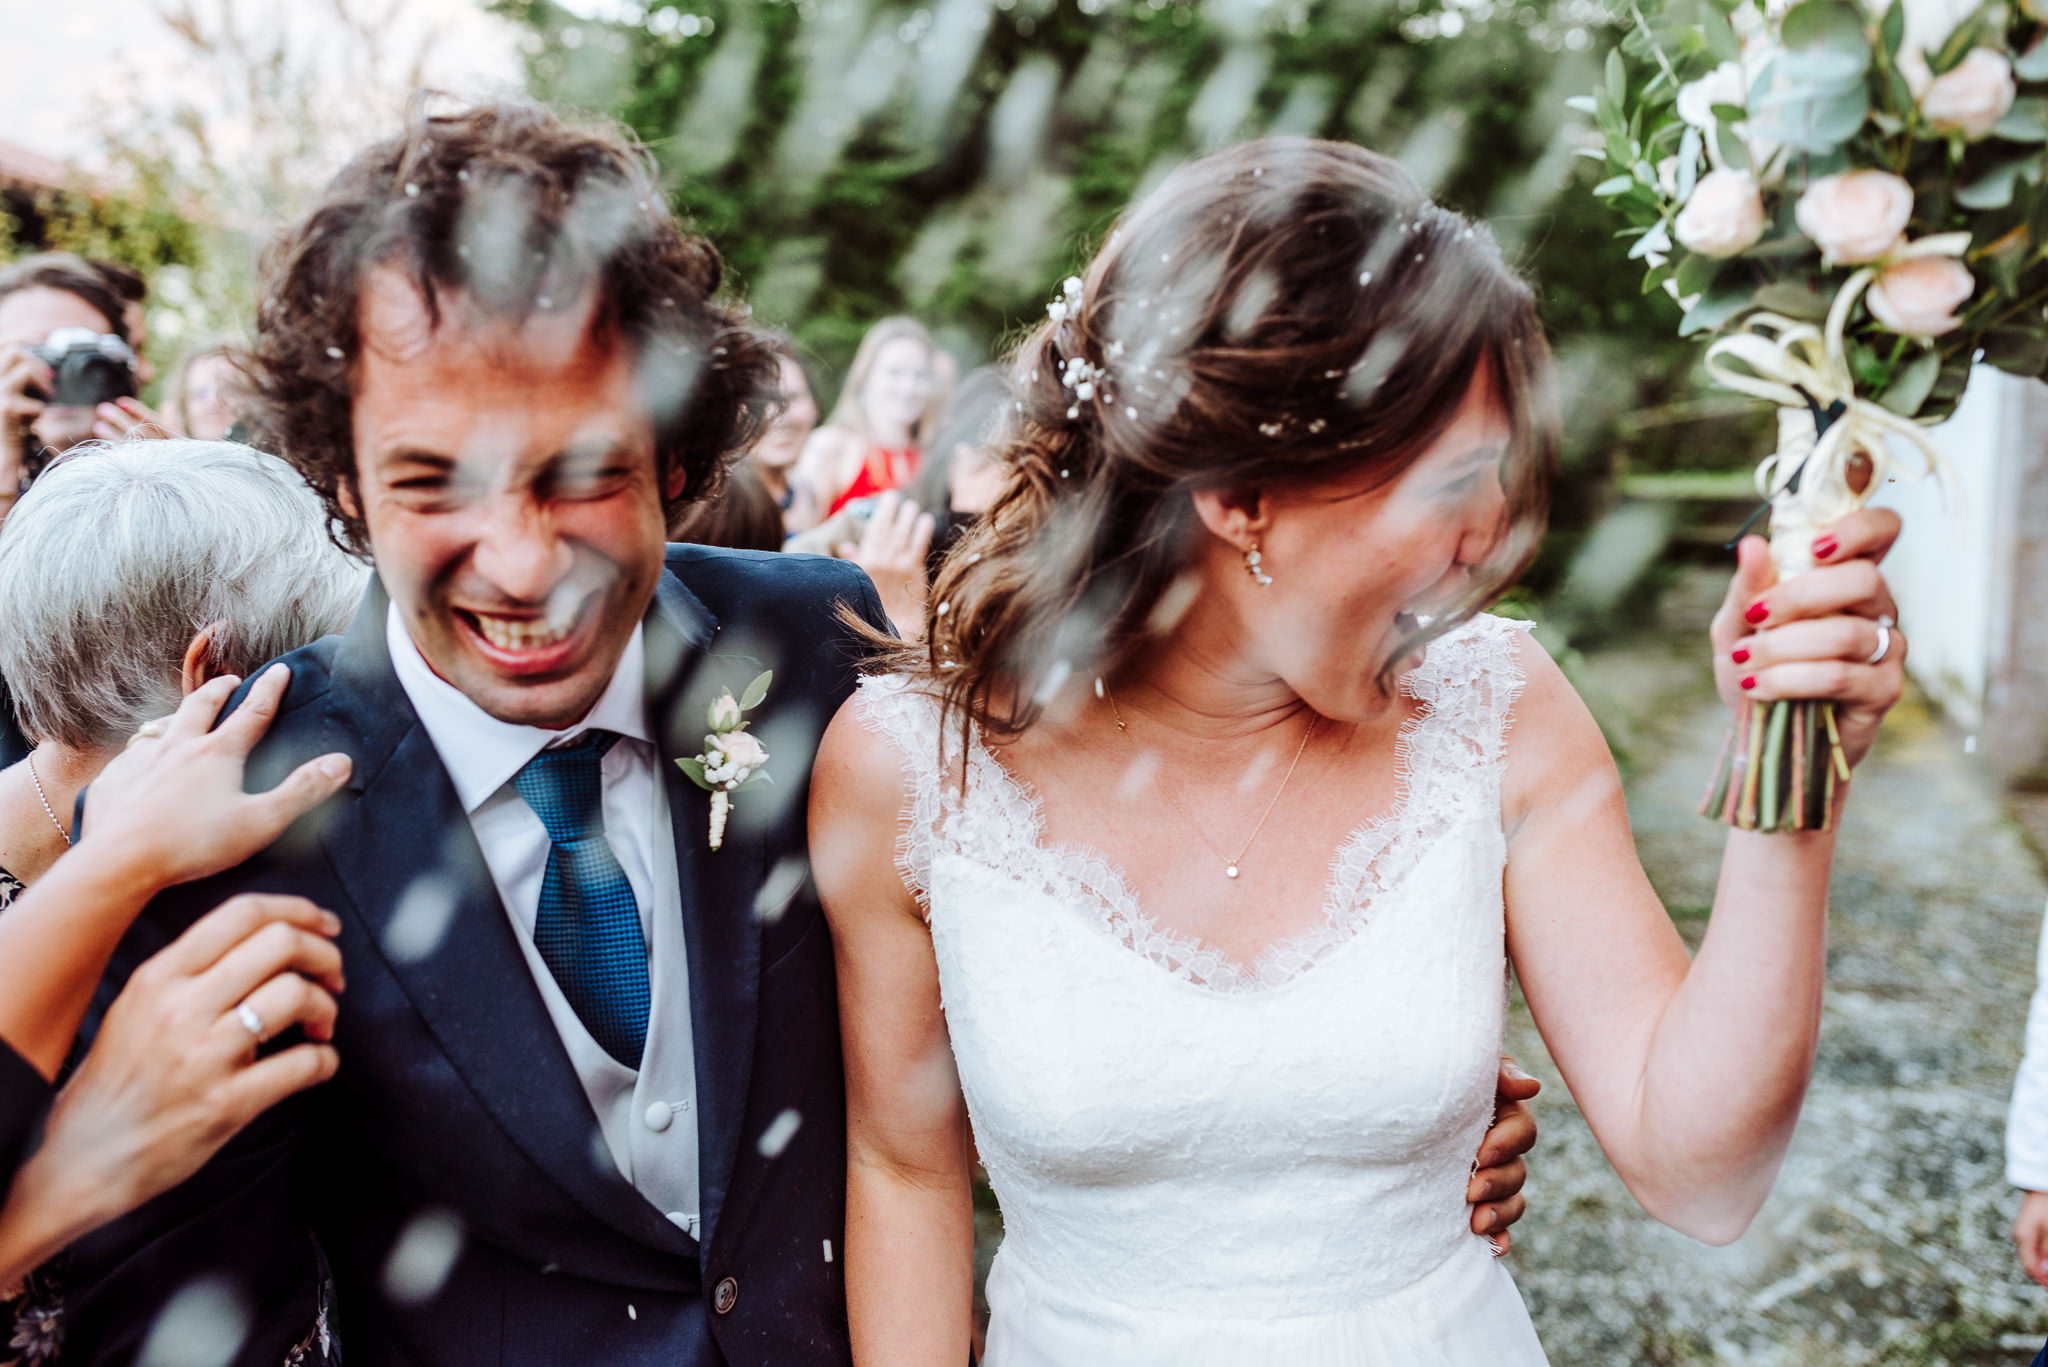 I MAKE DESTINATION WEDDING PLANNERS' WORK EASIER - I'll help you get messy paperwork in order. I'll translate speeches, craft bilingual wedding ceremonies and bring two cultures together to make the couple's big day as perfect—and bilingual—as possible.